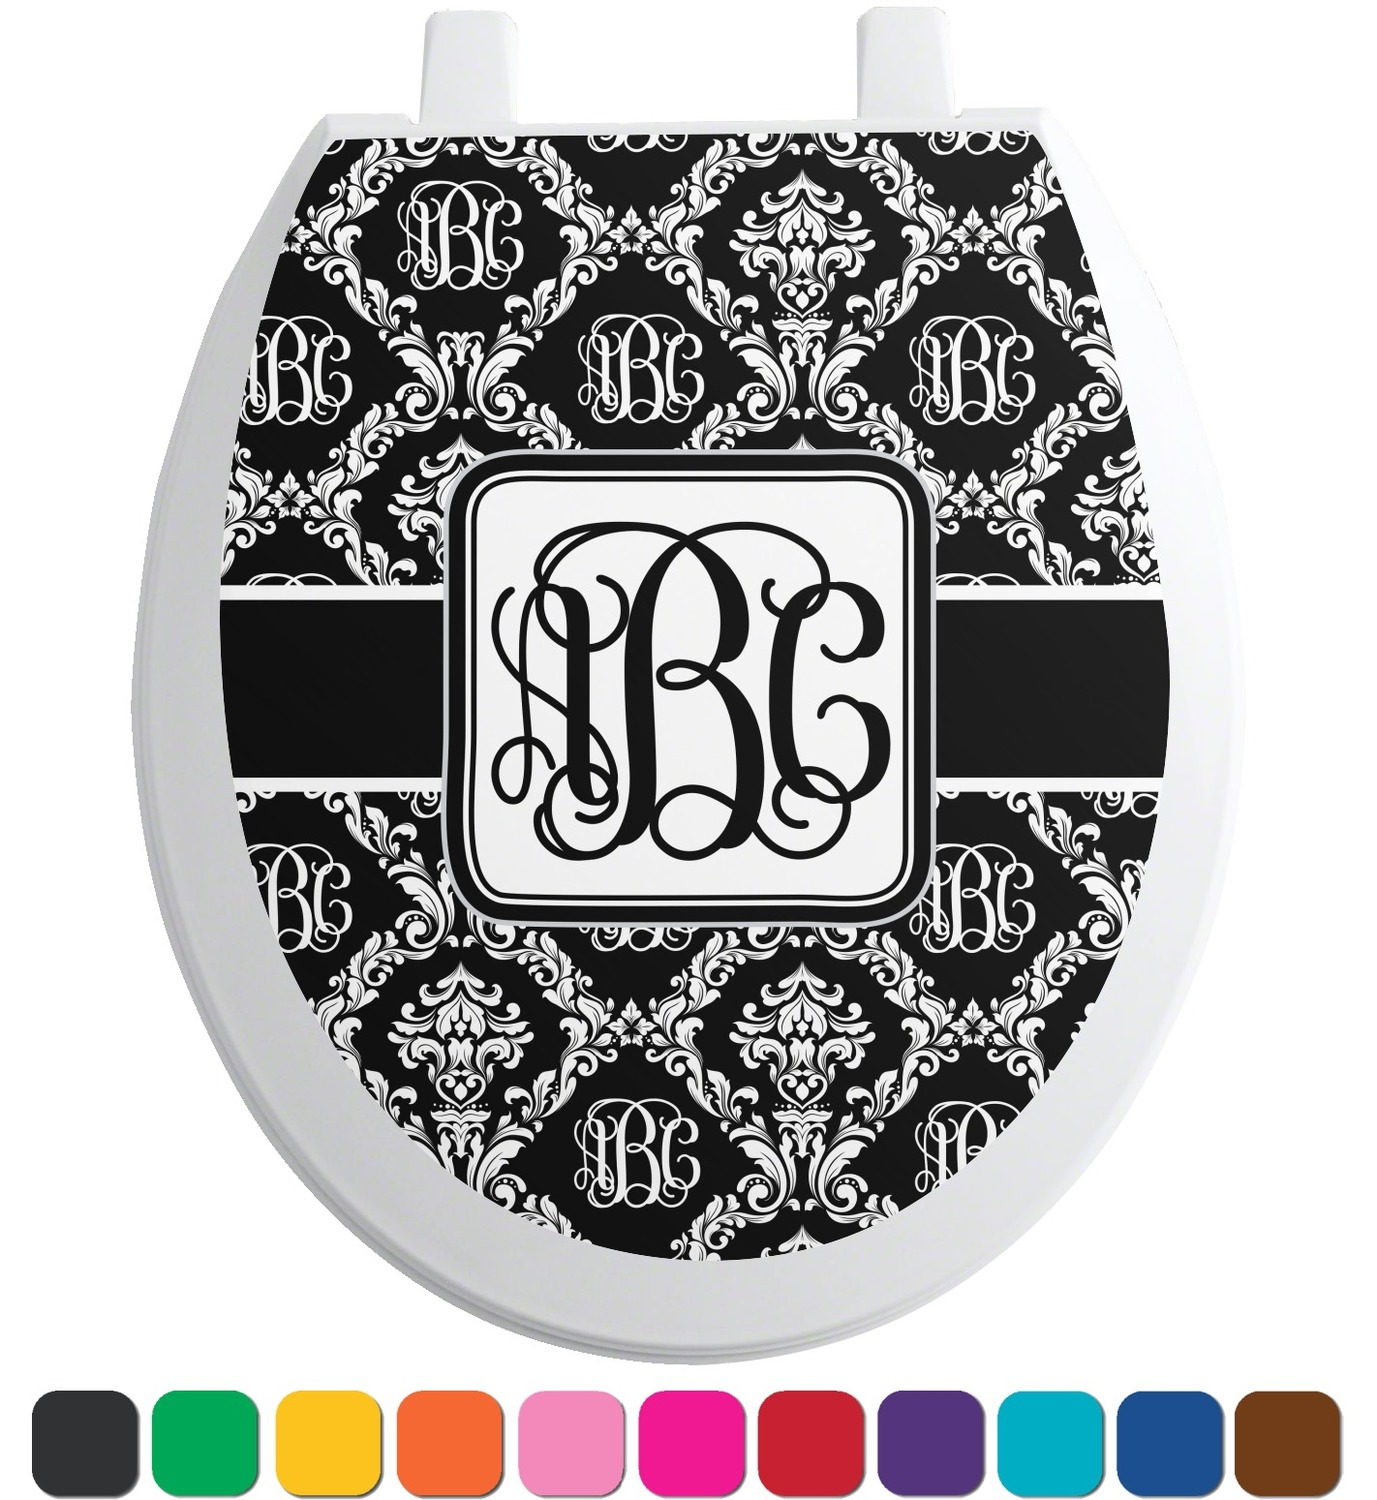 monogrammed damask toilet seat decal elongated. Black Bedroom Furniture Sets. Home Design Ideas